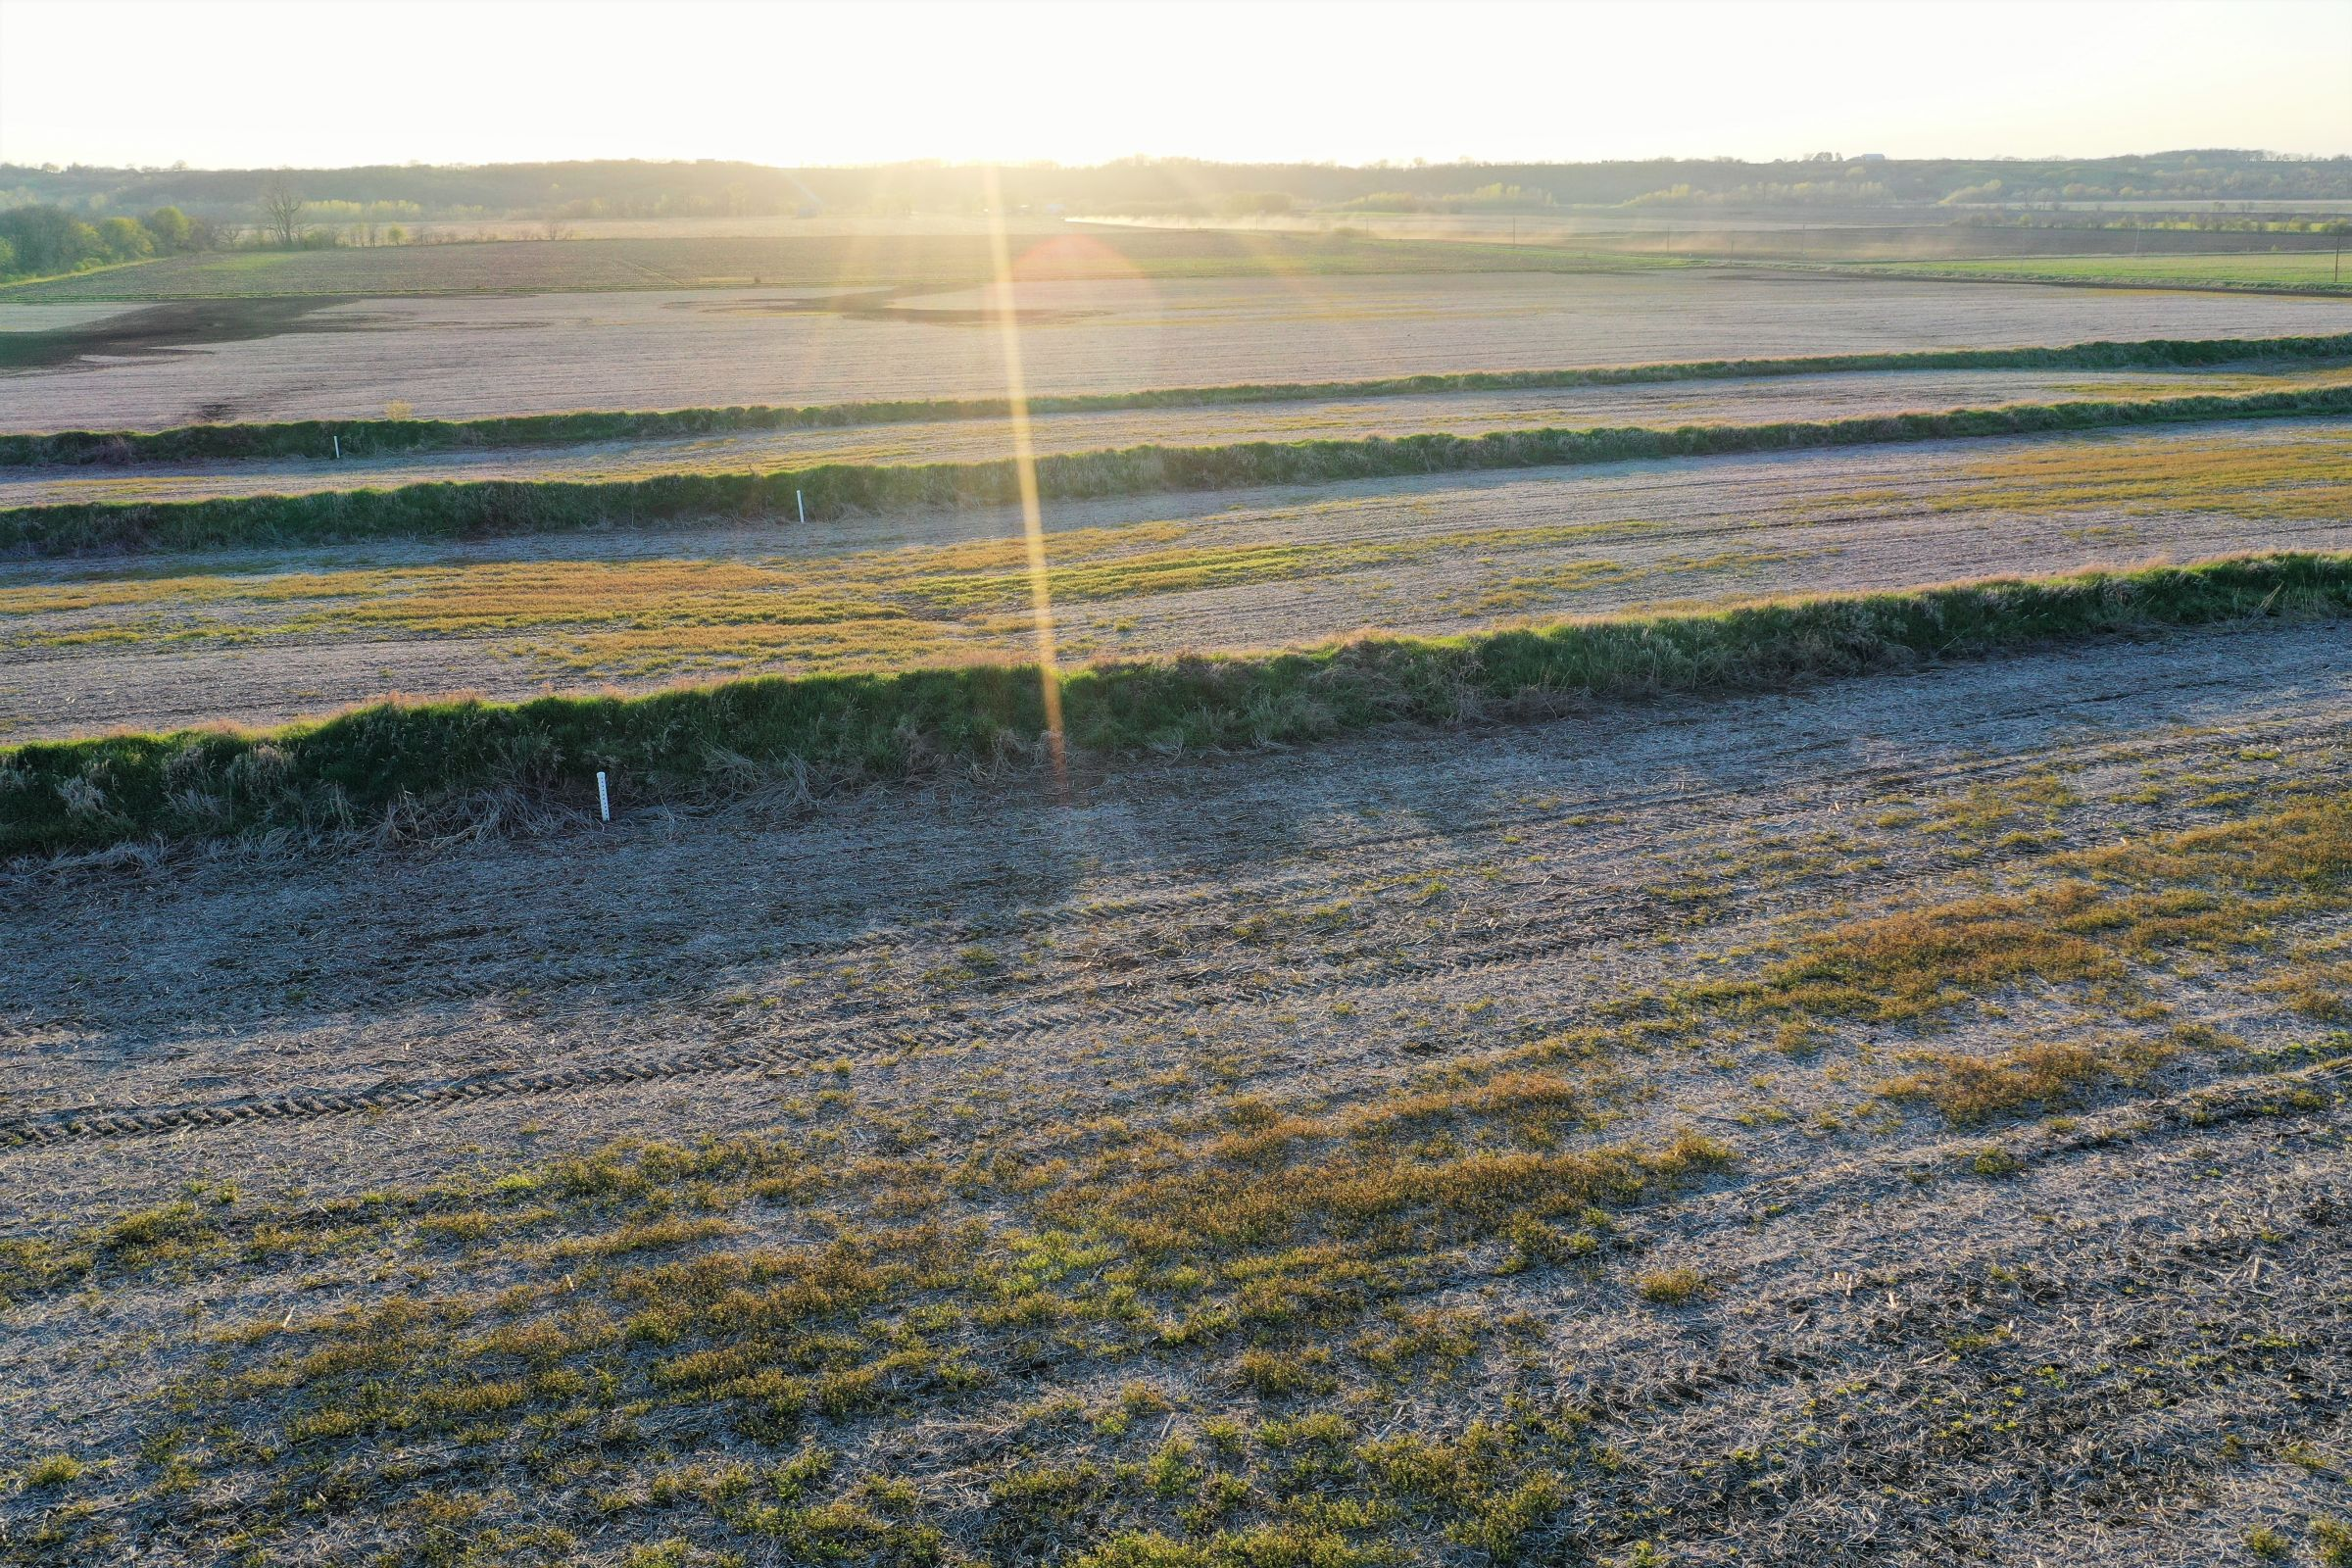 land-page-county-iowa-120-acres-listing-number-14982-4-2020-04-28-192953.jpg